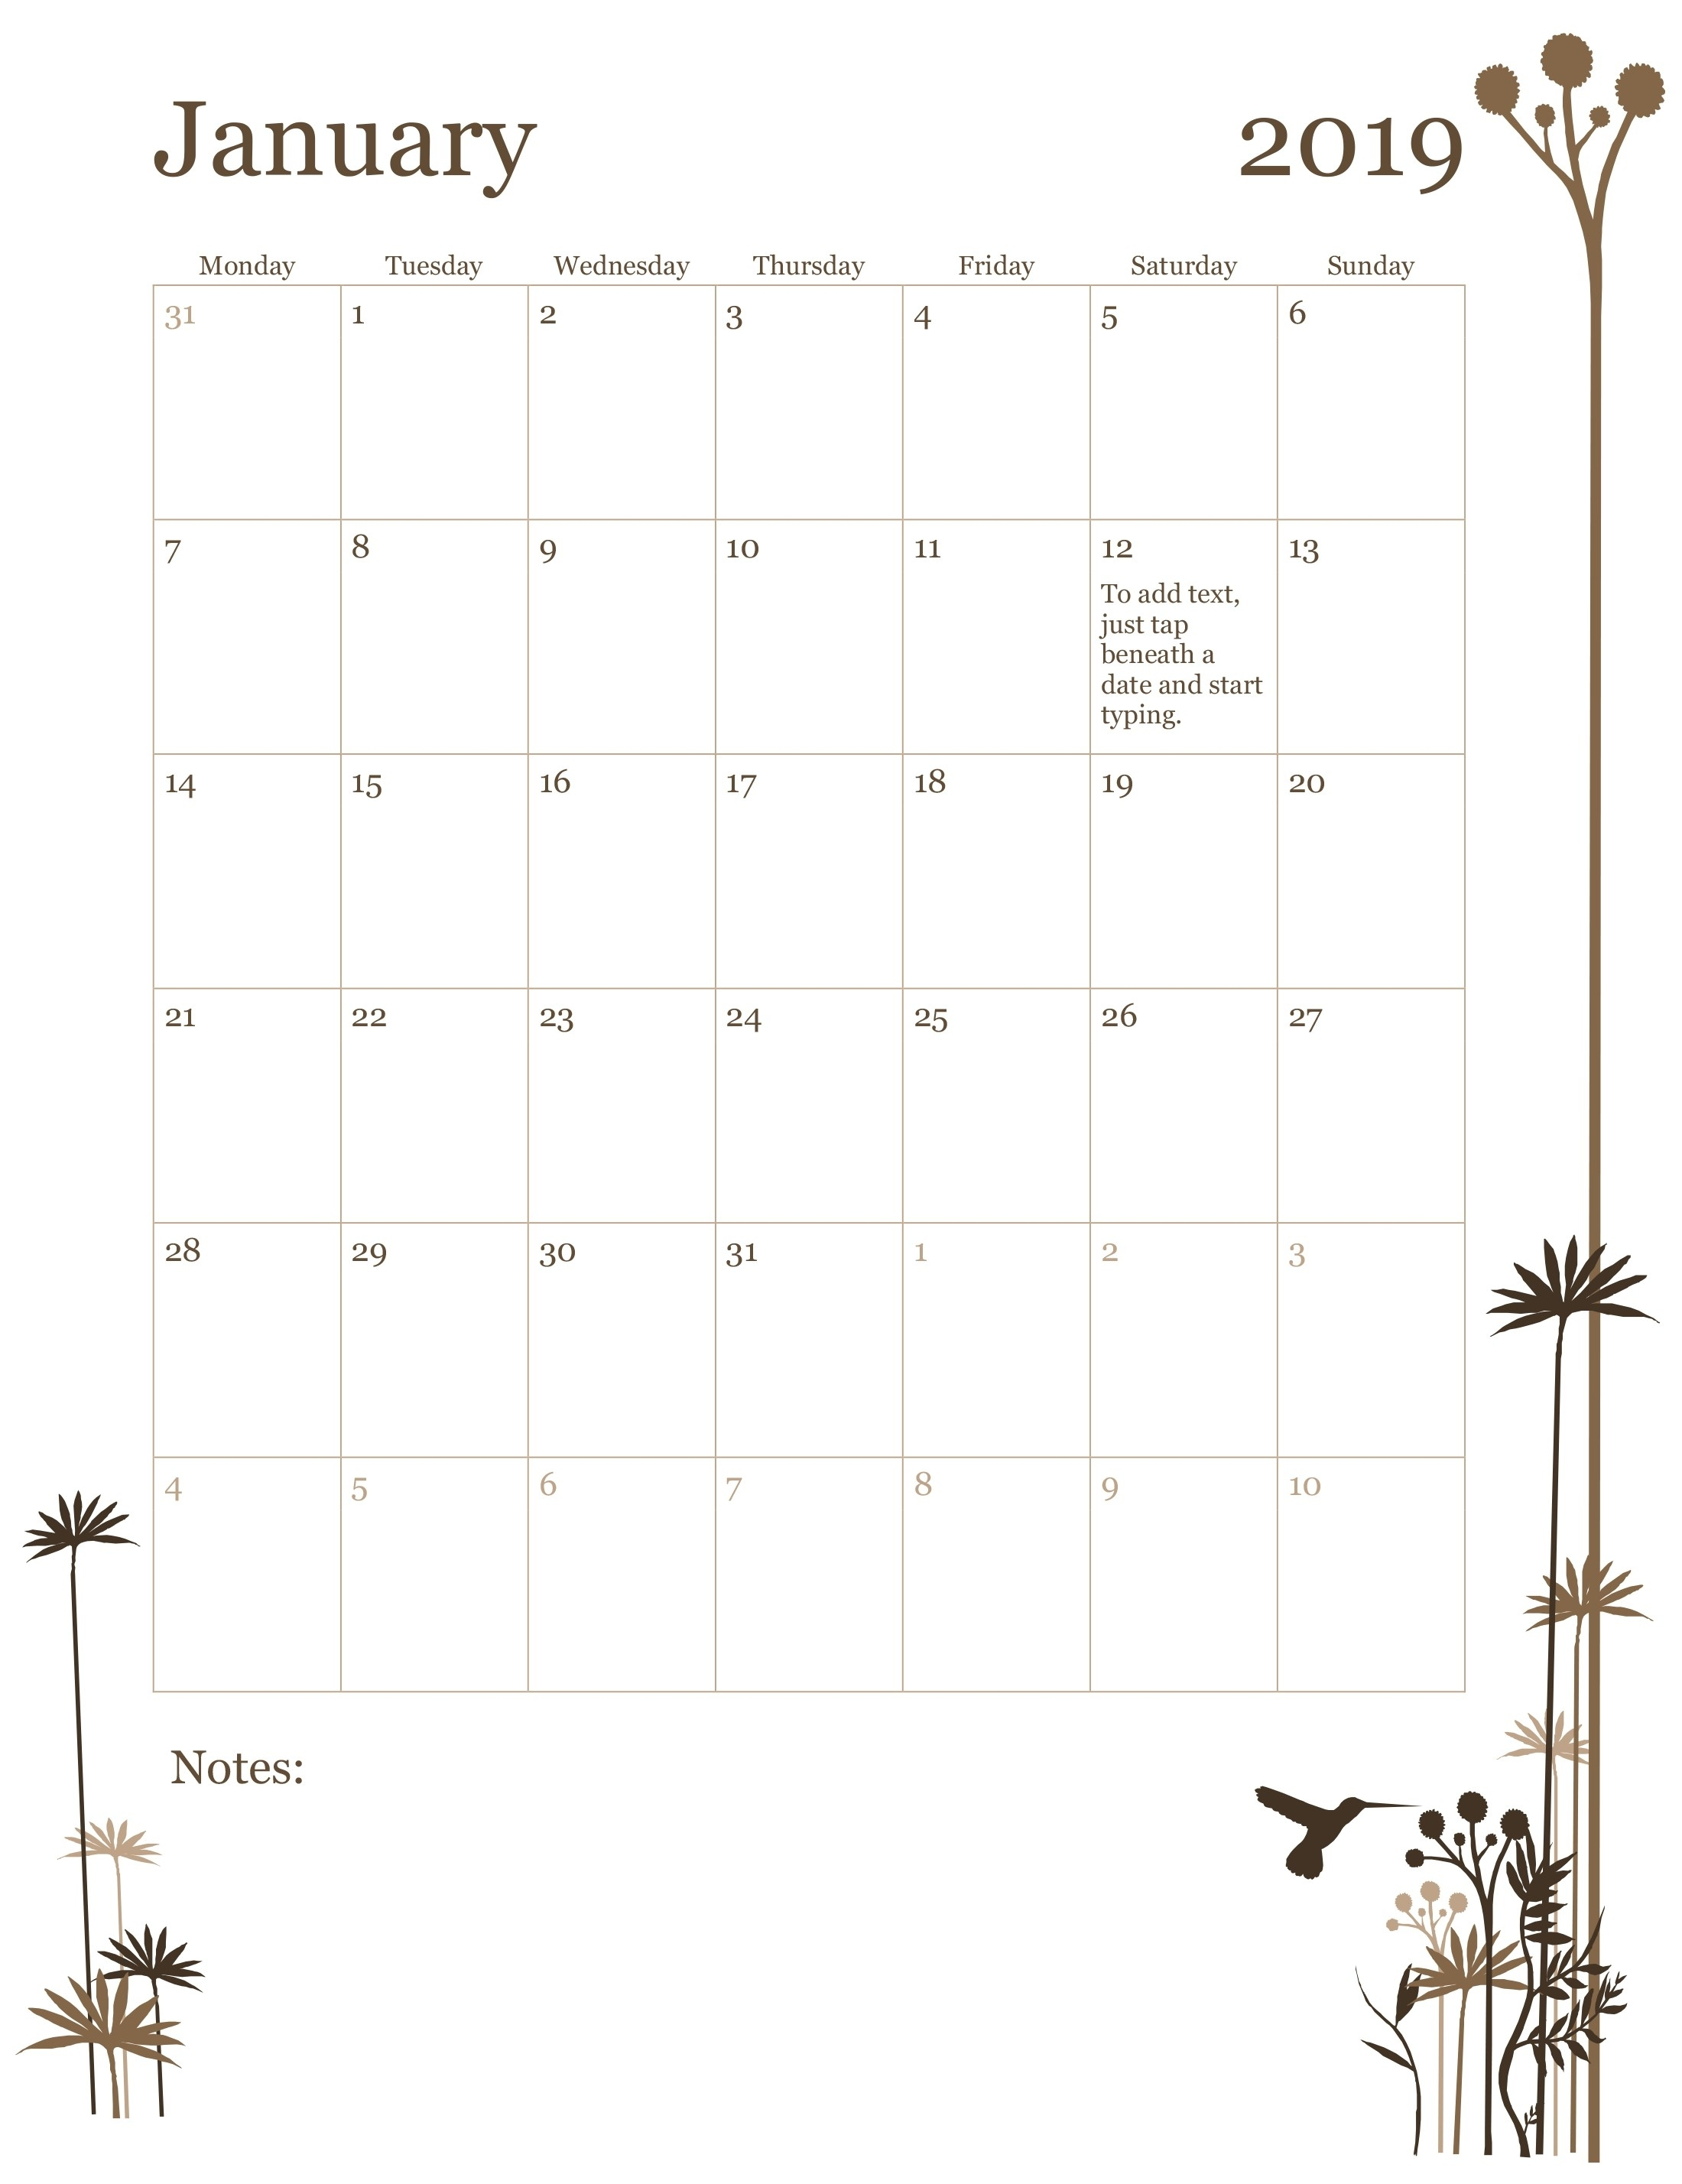 2019 12-Month Calendar (Mon-Sun) regarding Blank 12 Month Seasonal Calendar